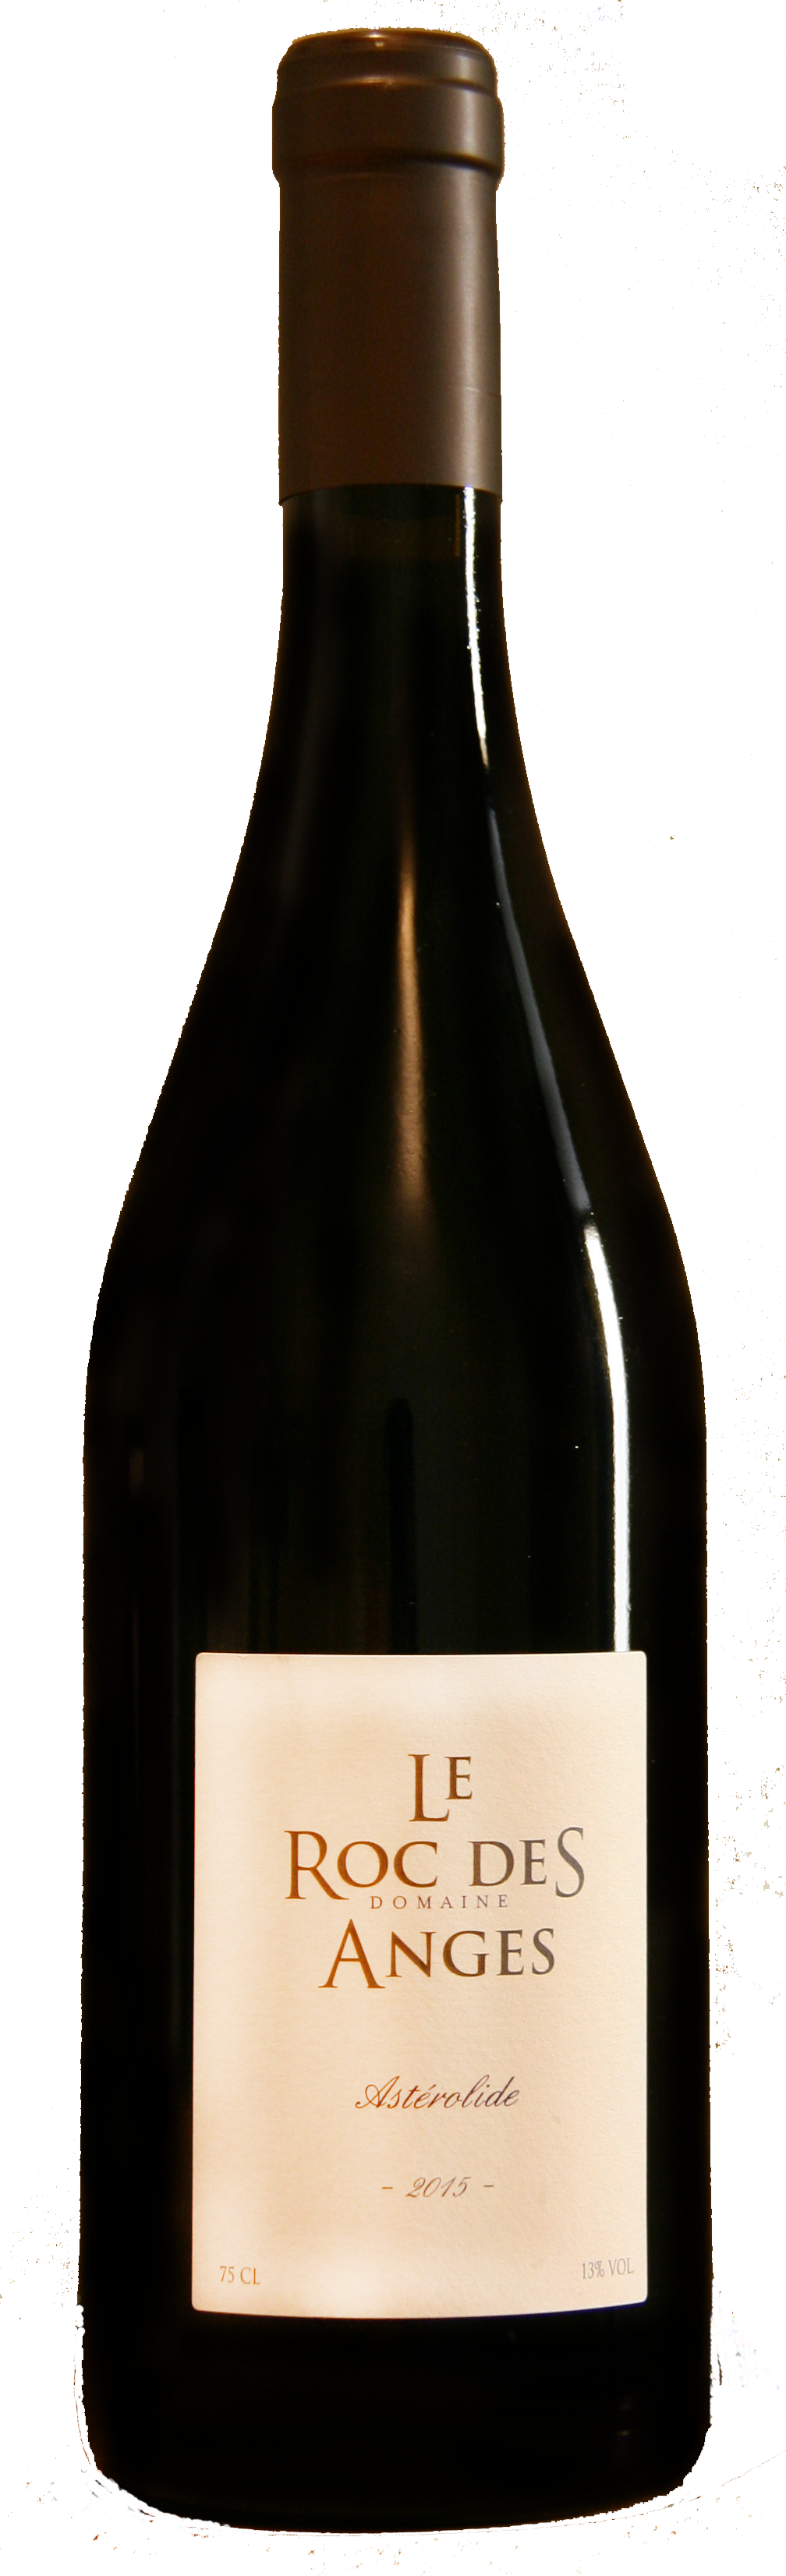 Roc Des Anges IGP Cotes Catalanes Asterolide